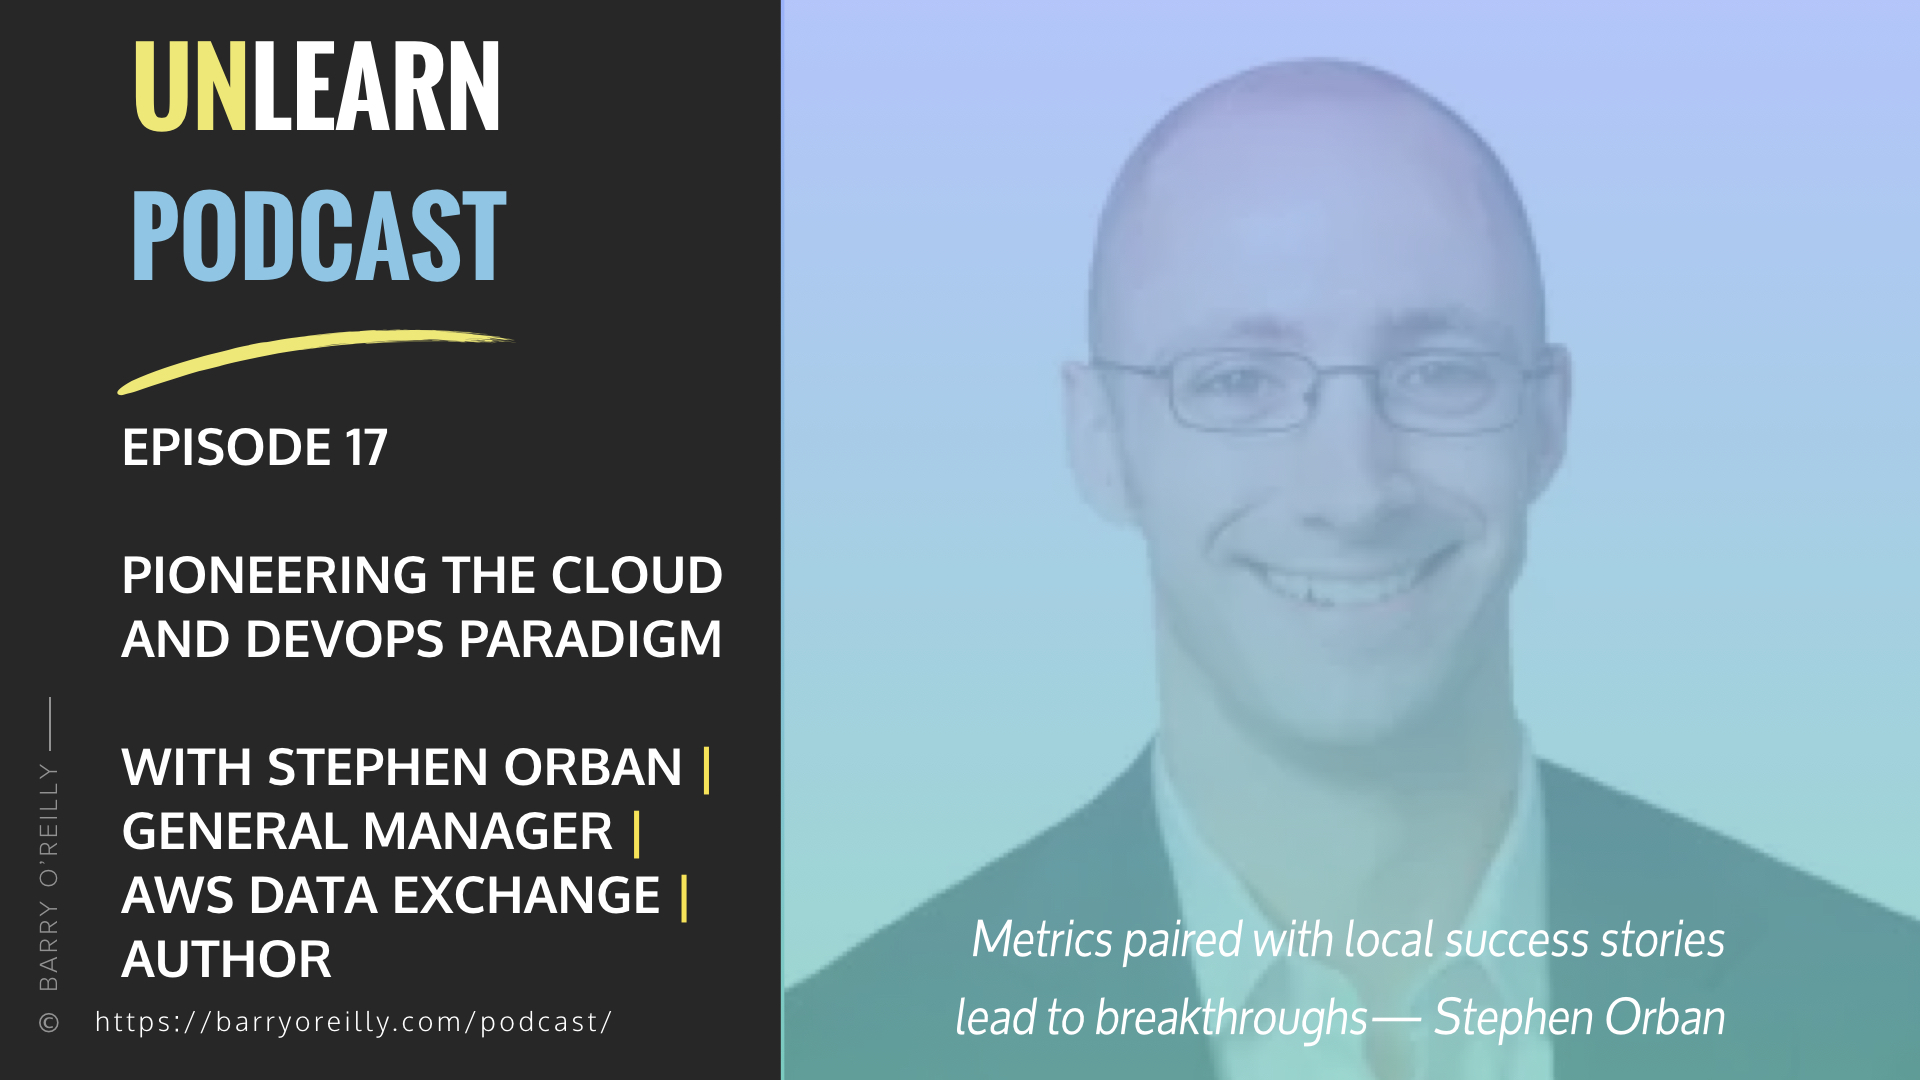 Pioneering the Cloud and DevOps Paradigm with Stephen Orban